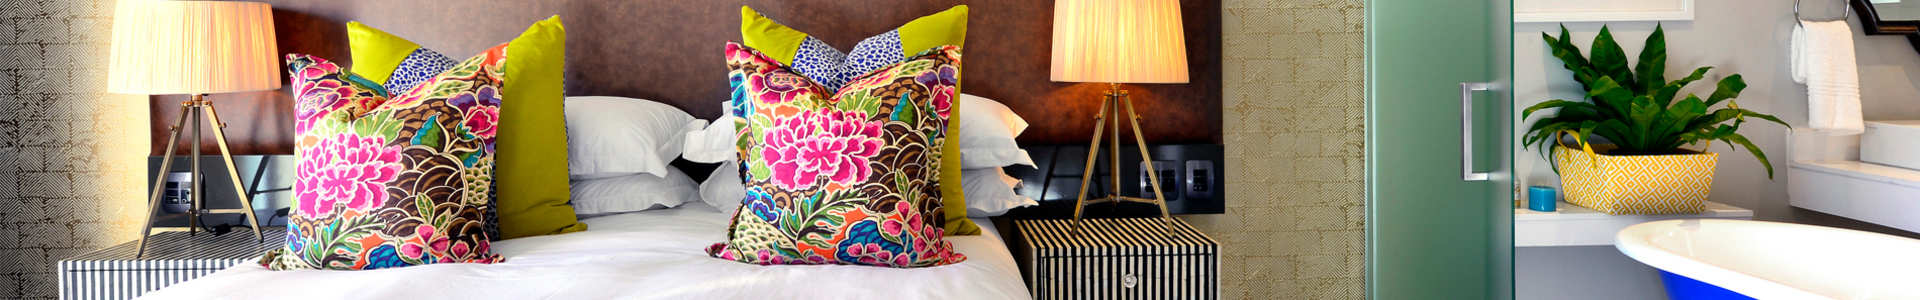 Franschhoek Boutique Hotel Western Cape South Africa Accommodation